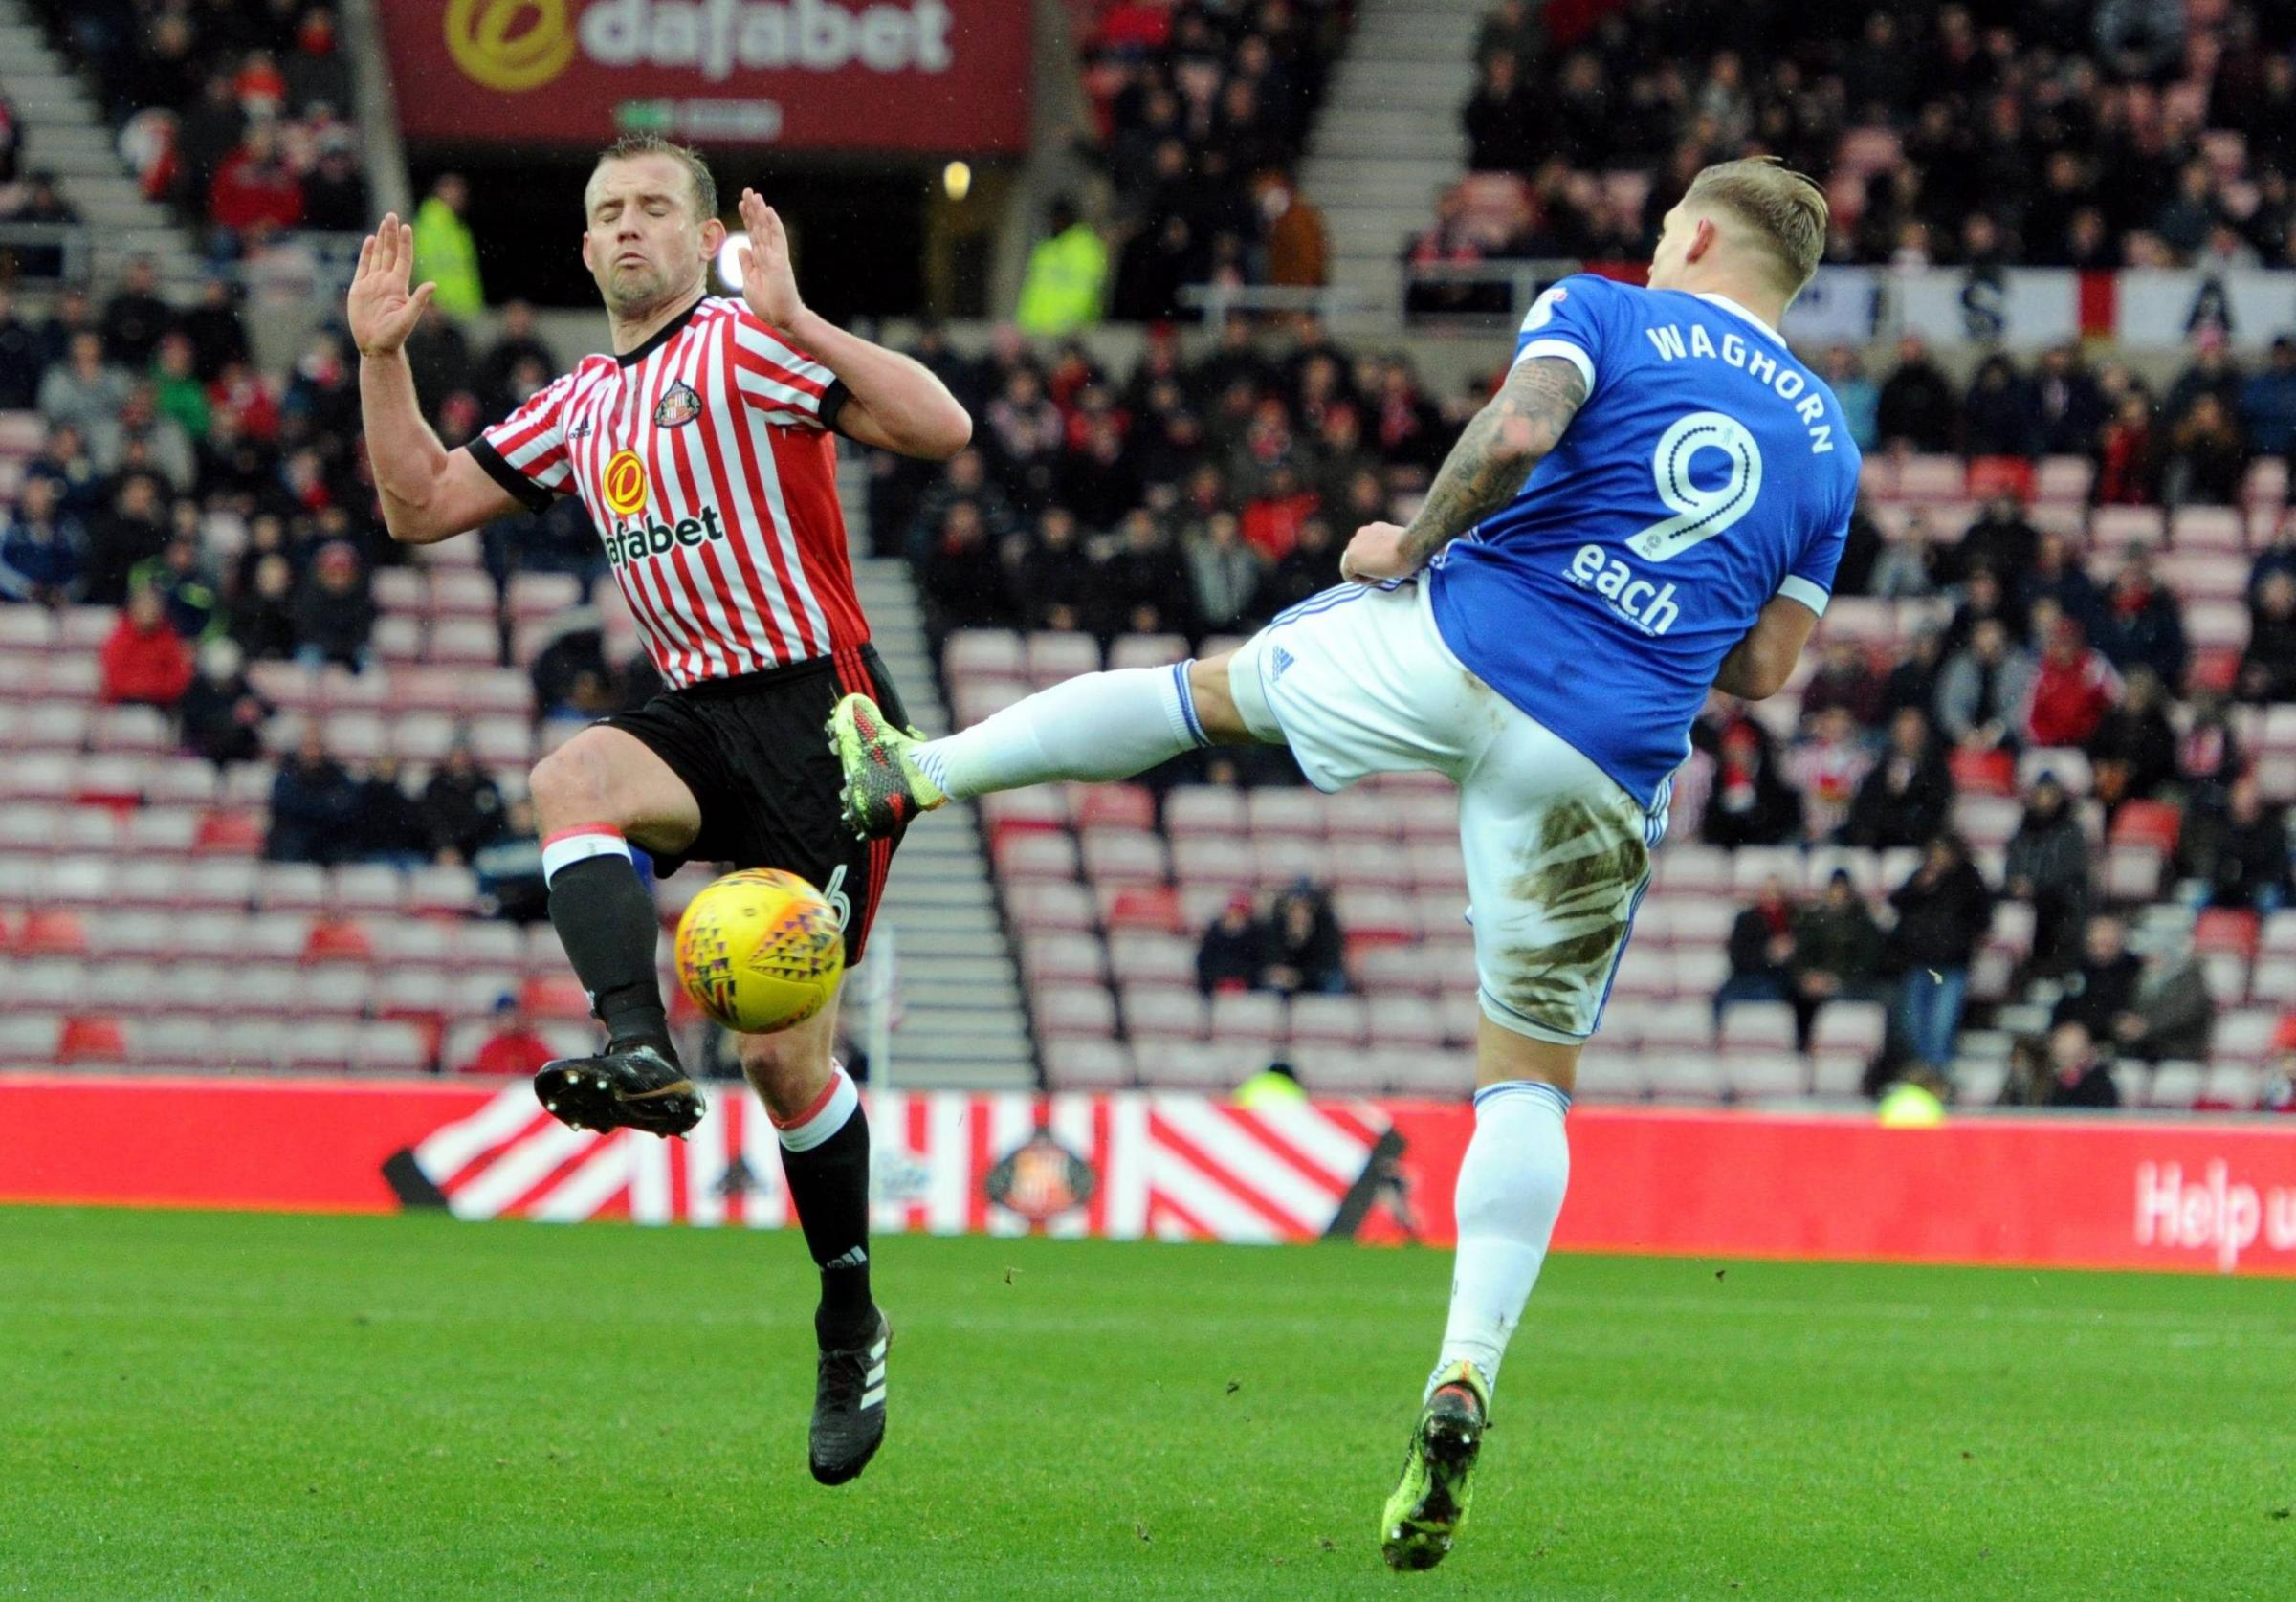 MY BALL: Lee Cattermole challenges Ipswich forward Martyn Waghorn for possession (Picture: North News)